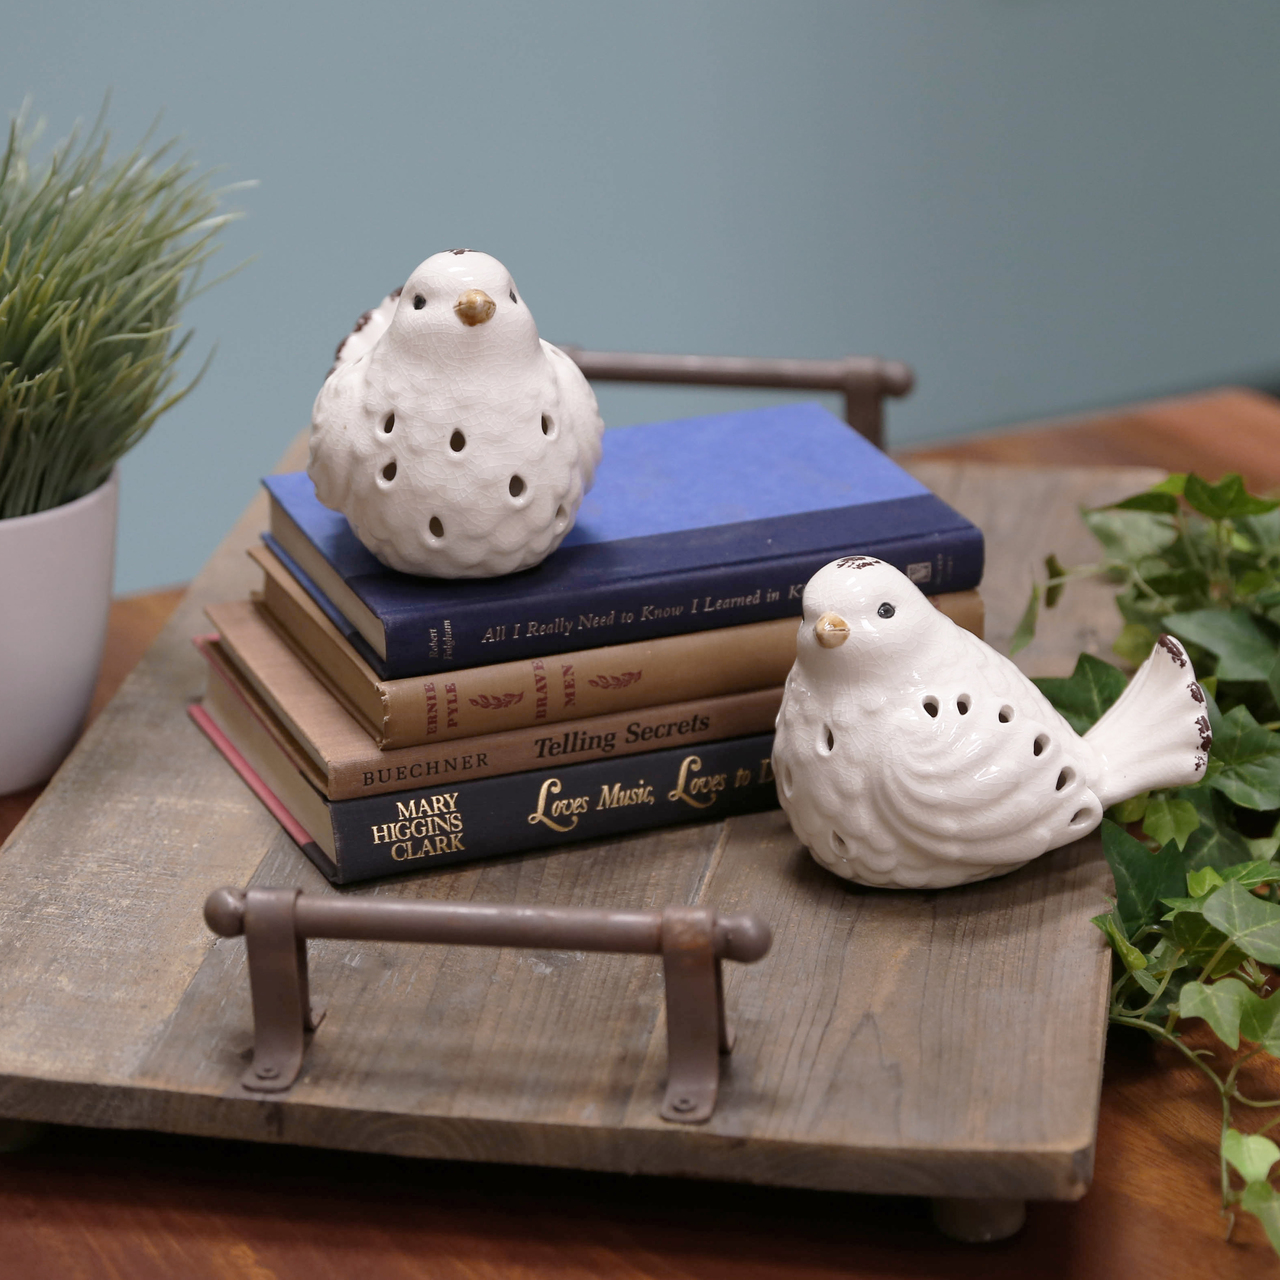 Porcelain Bird Figurine With Cutout Design Ortment Of Two Distressed Gloss Finish White